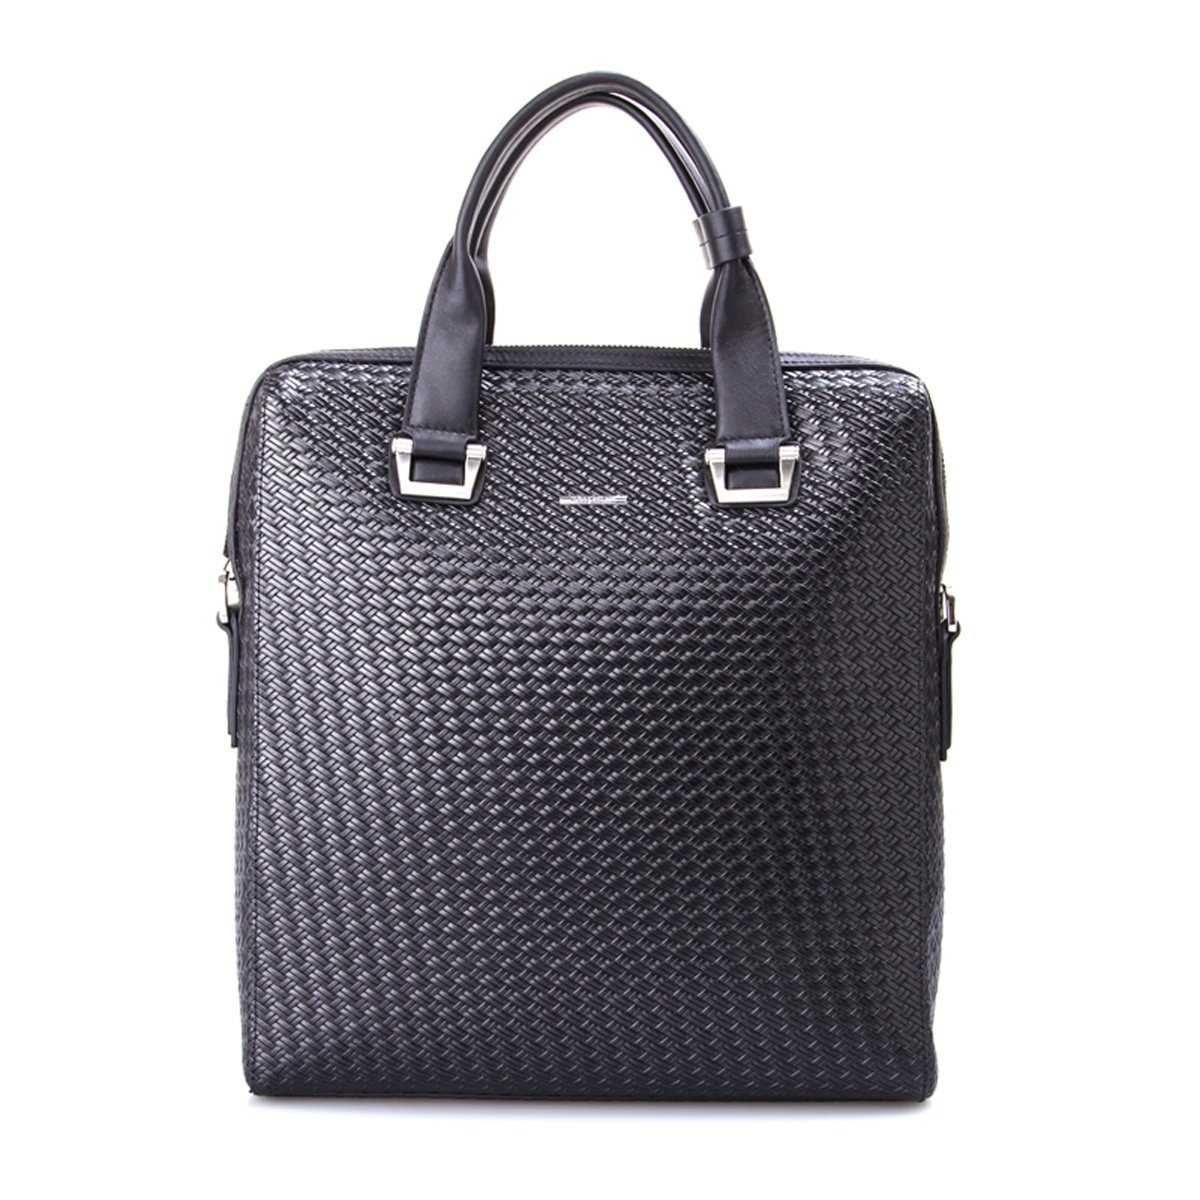 Haagendess Woven Deluxe Leather Business Tote Bag (Black)